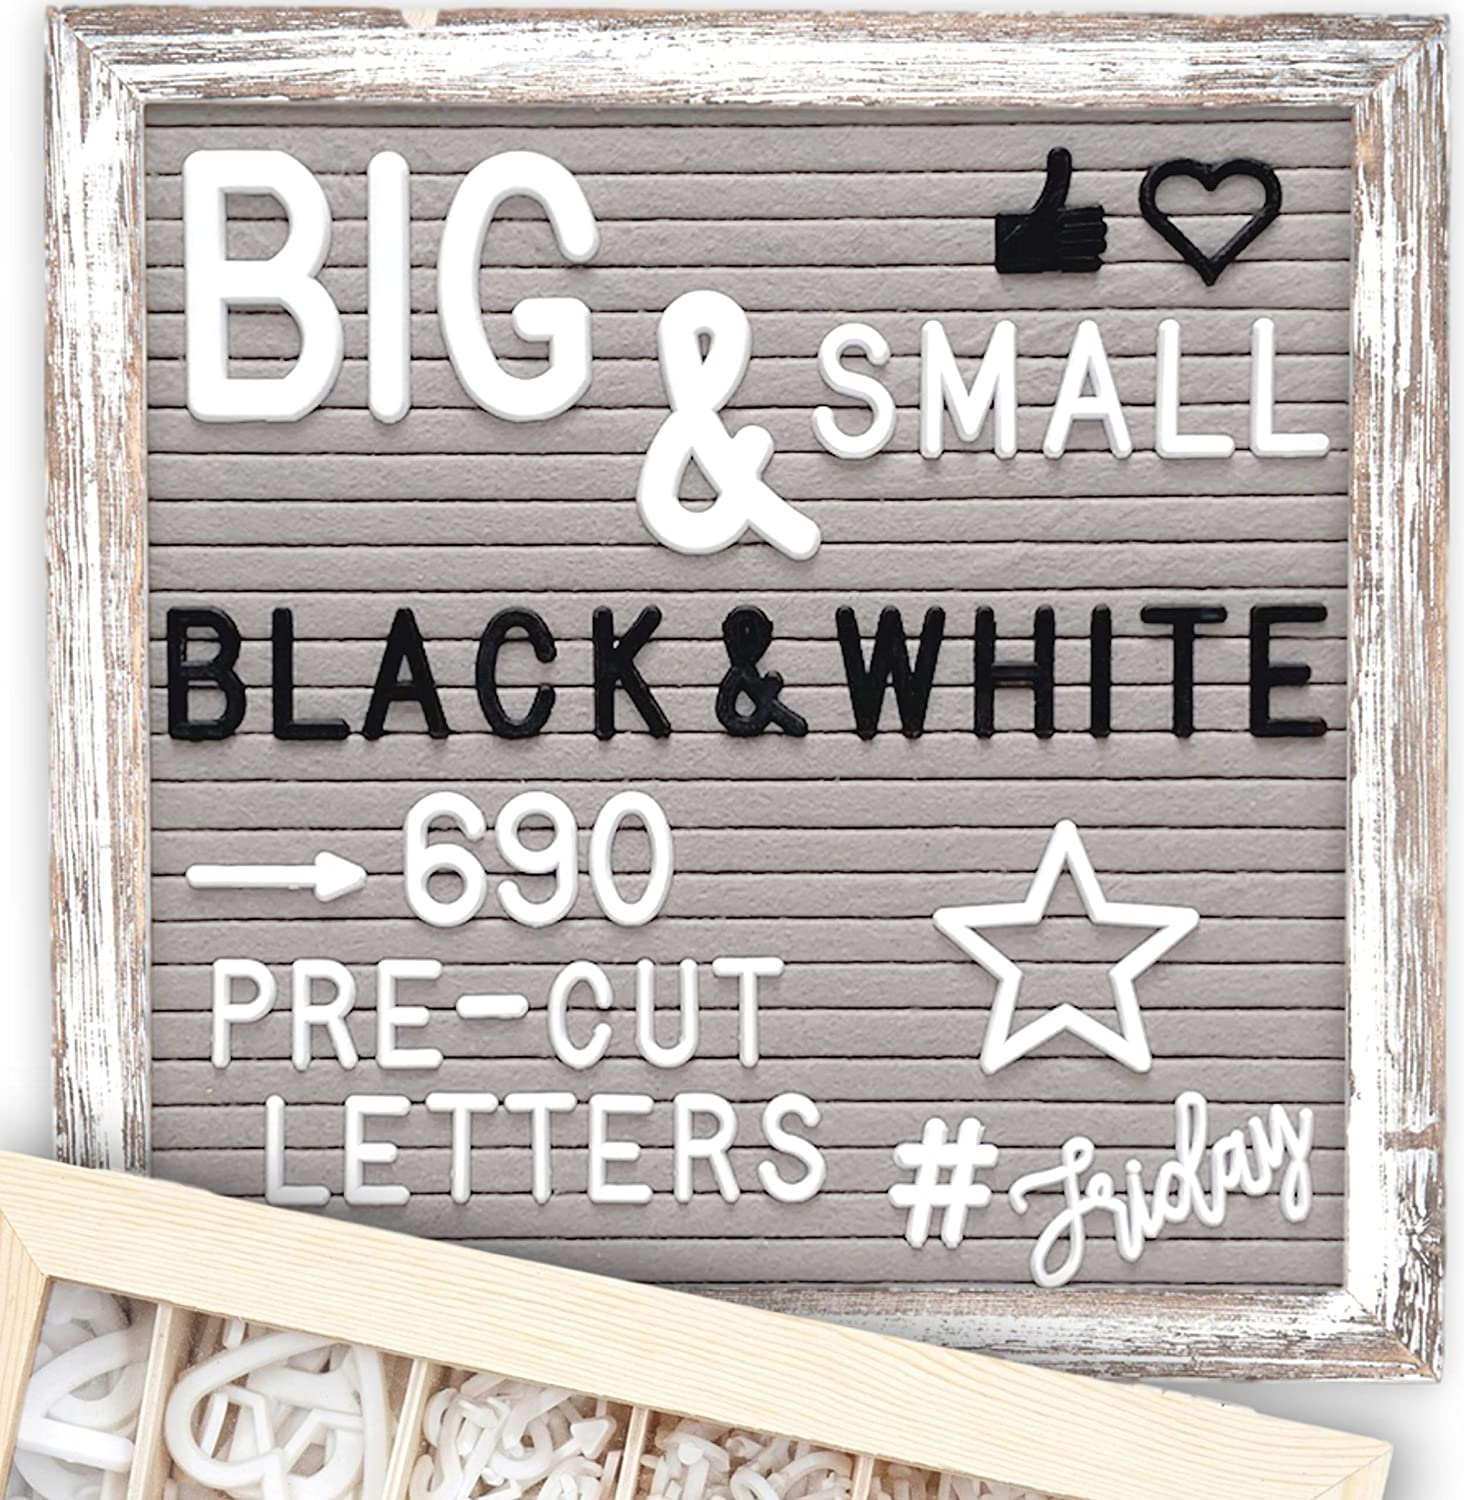 Letter Board 10x10 Rustic Gray | +690 PRE-Cut Letters +Stand +Upgraded Wooden Sorting Tray | Farmhouse Felt Letterboard with Cursive Words, Letter Boards, Word Board, Message Board, Changeable Sign